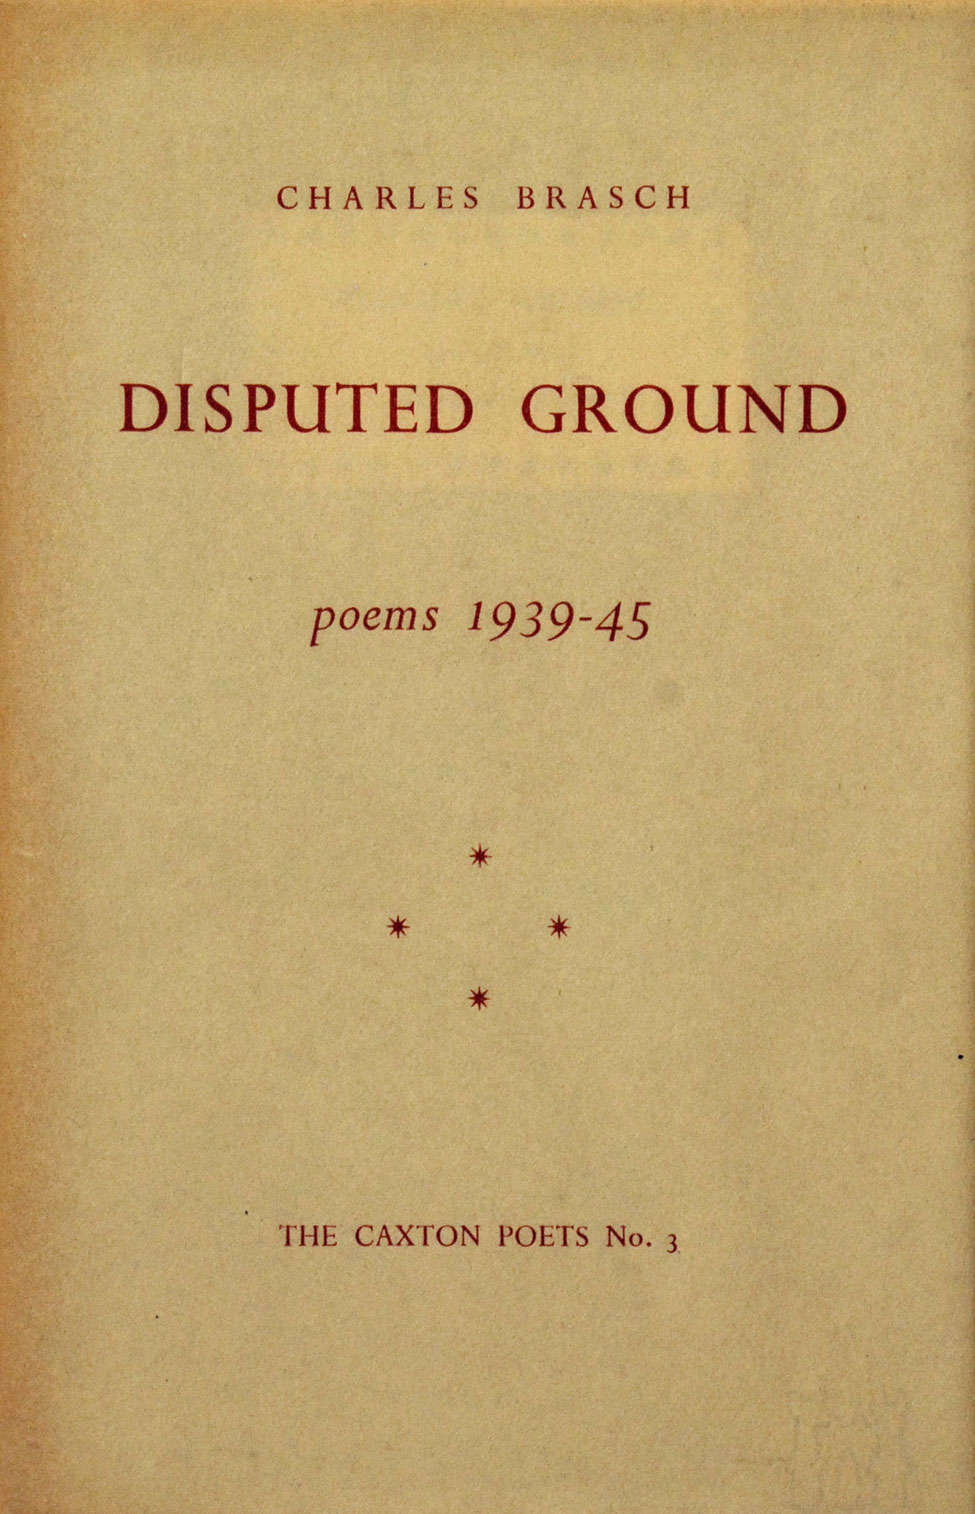 Charles Brasch. Disputed Ground: Poems 1939–45. <i>Christchurch: The Caxton Press, 1948; no. 3 in The Caxton Poets series.</i>